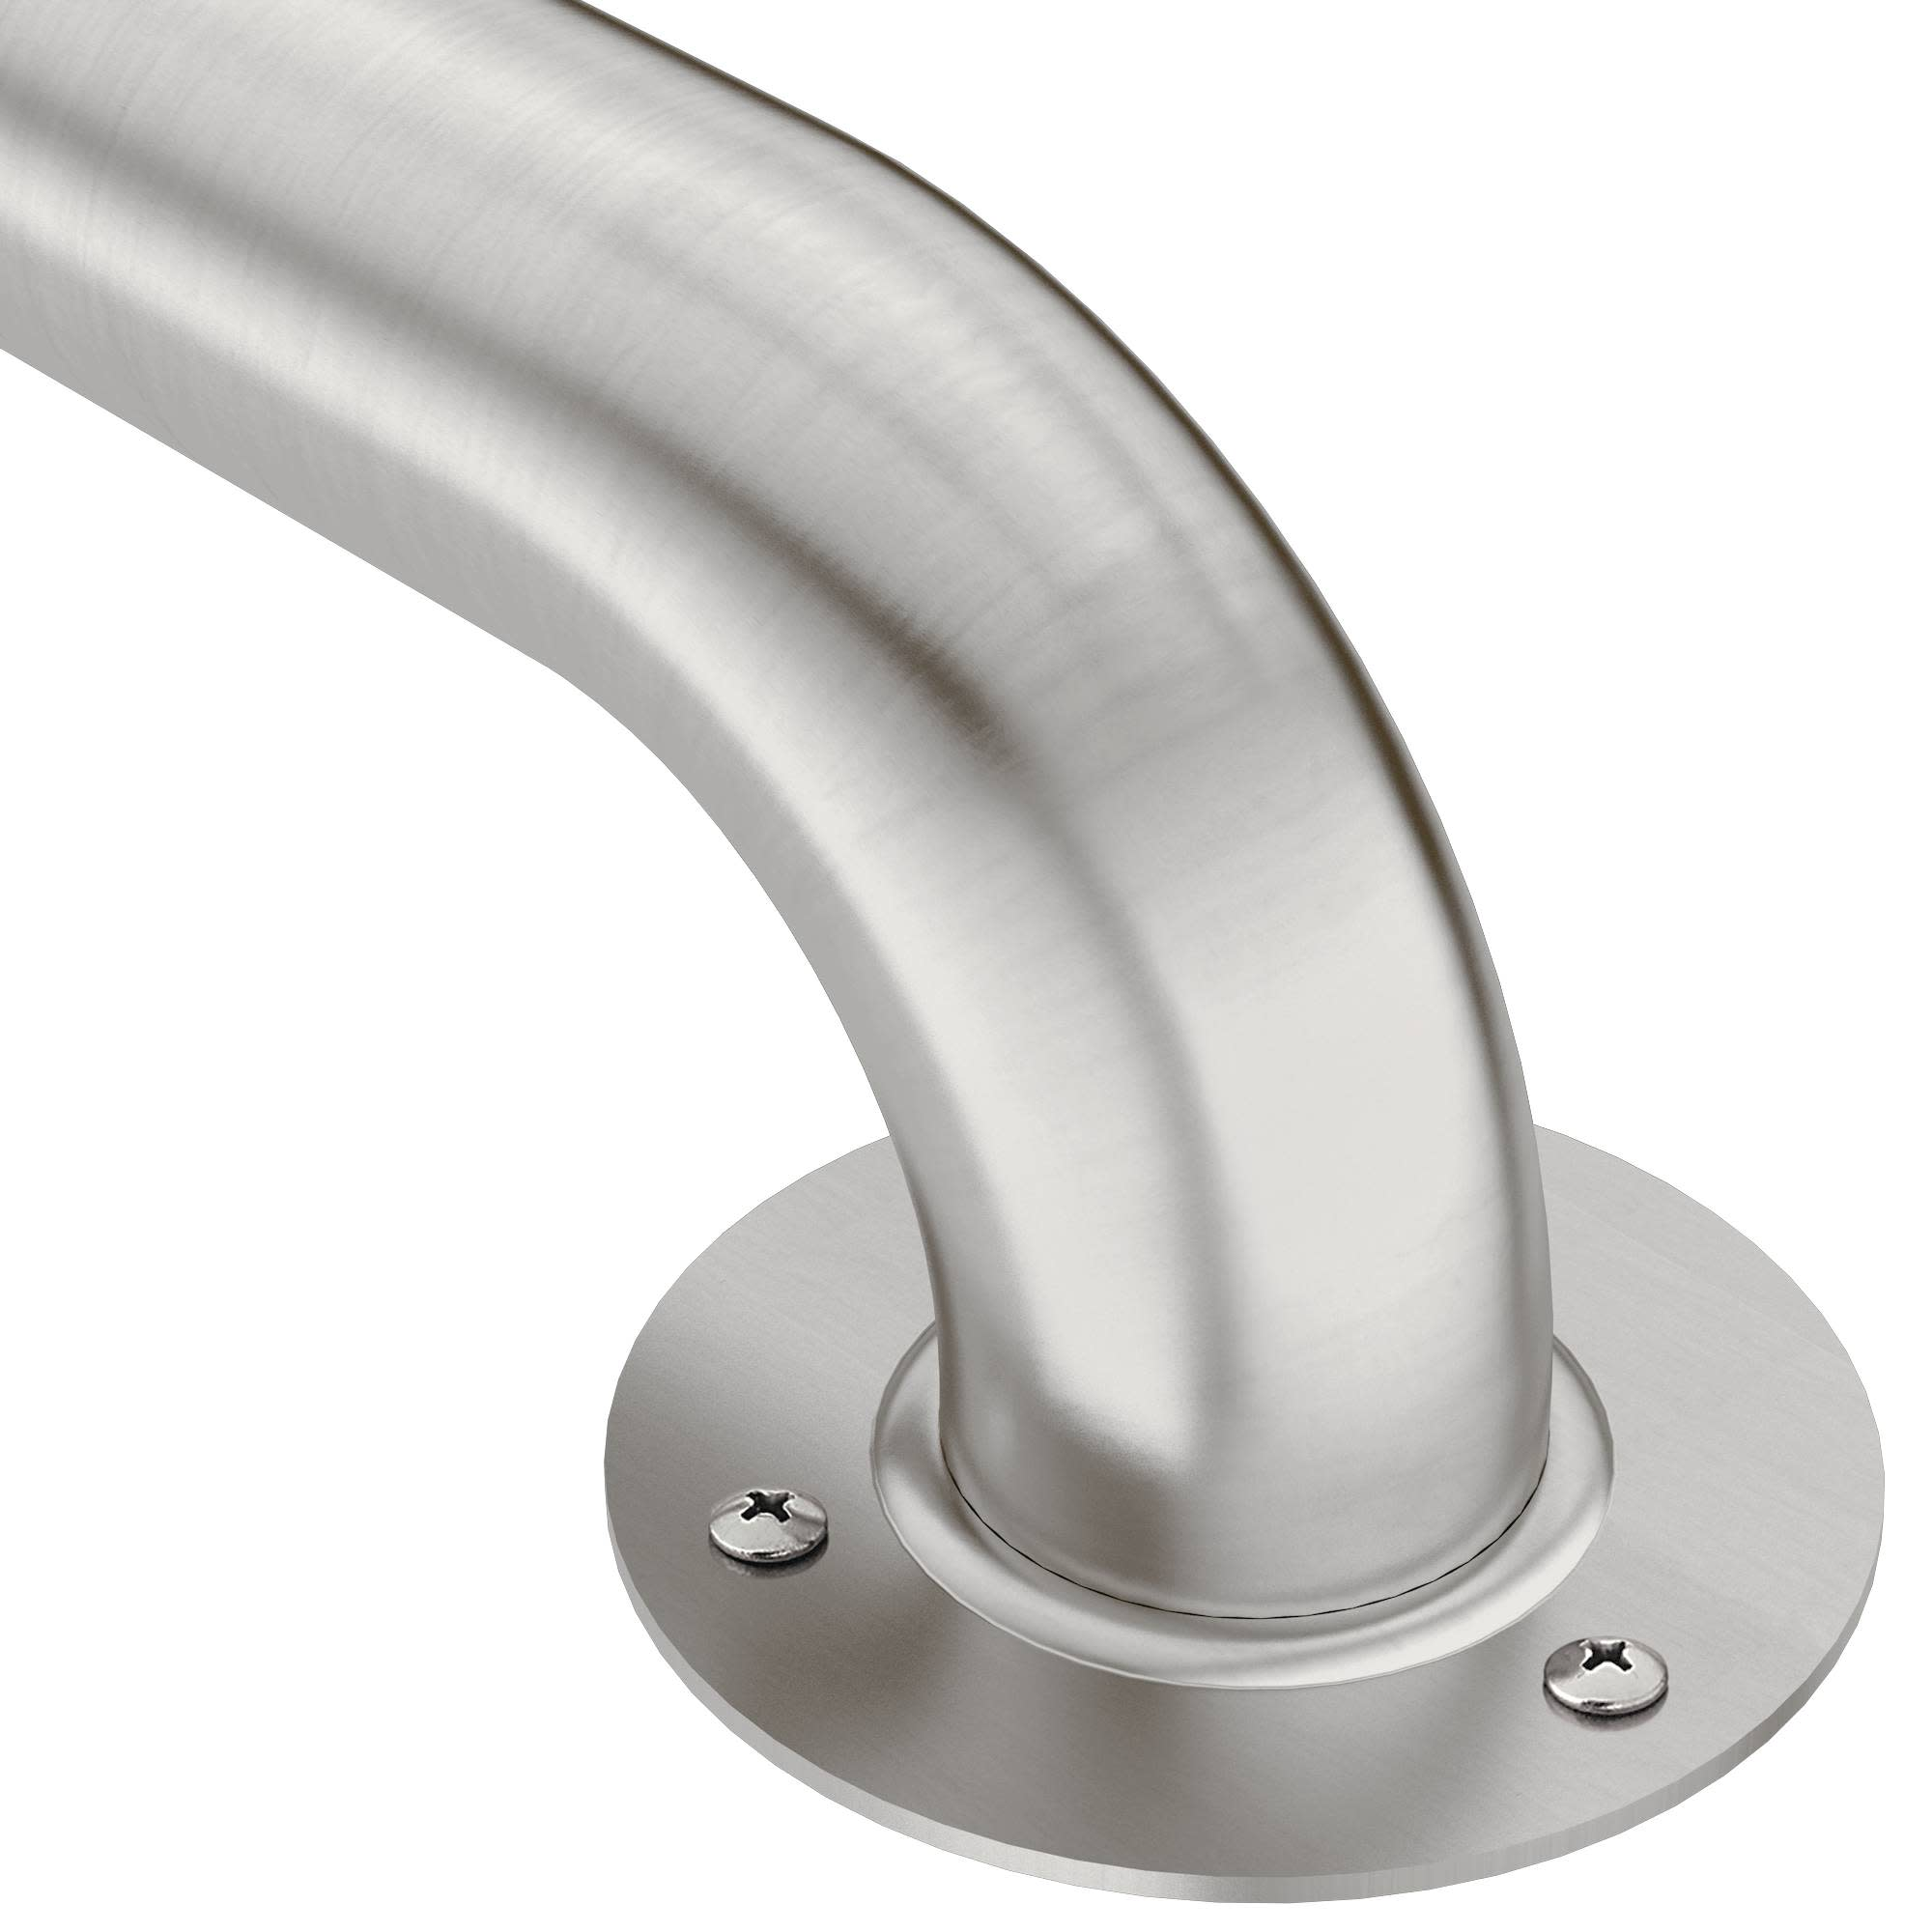 """Moen R7442 42"""" x 1-1/4"""" Grab Bar from the Home Care Collection"""